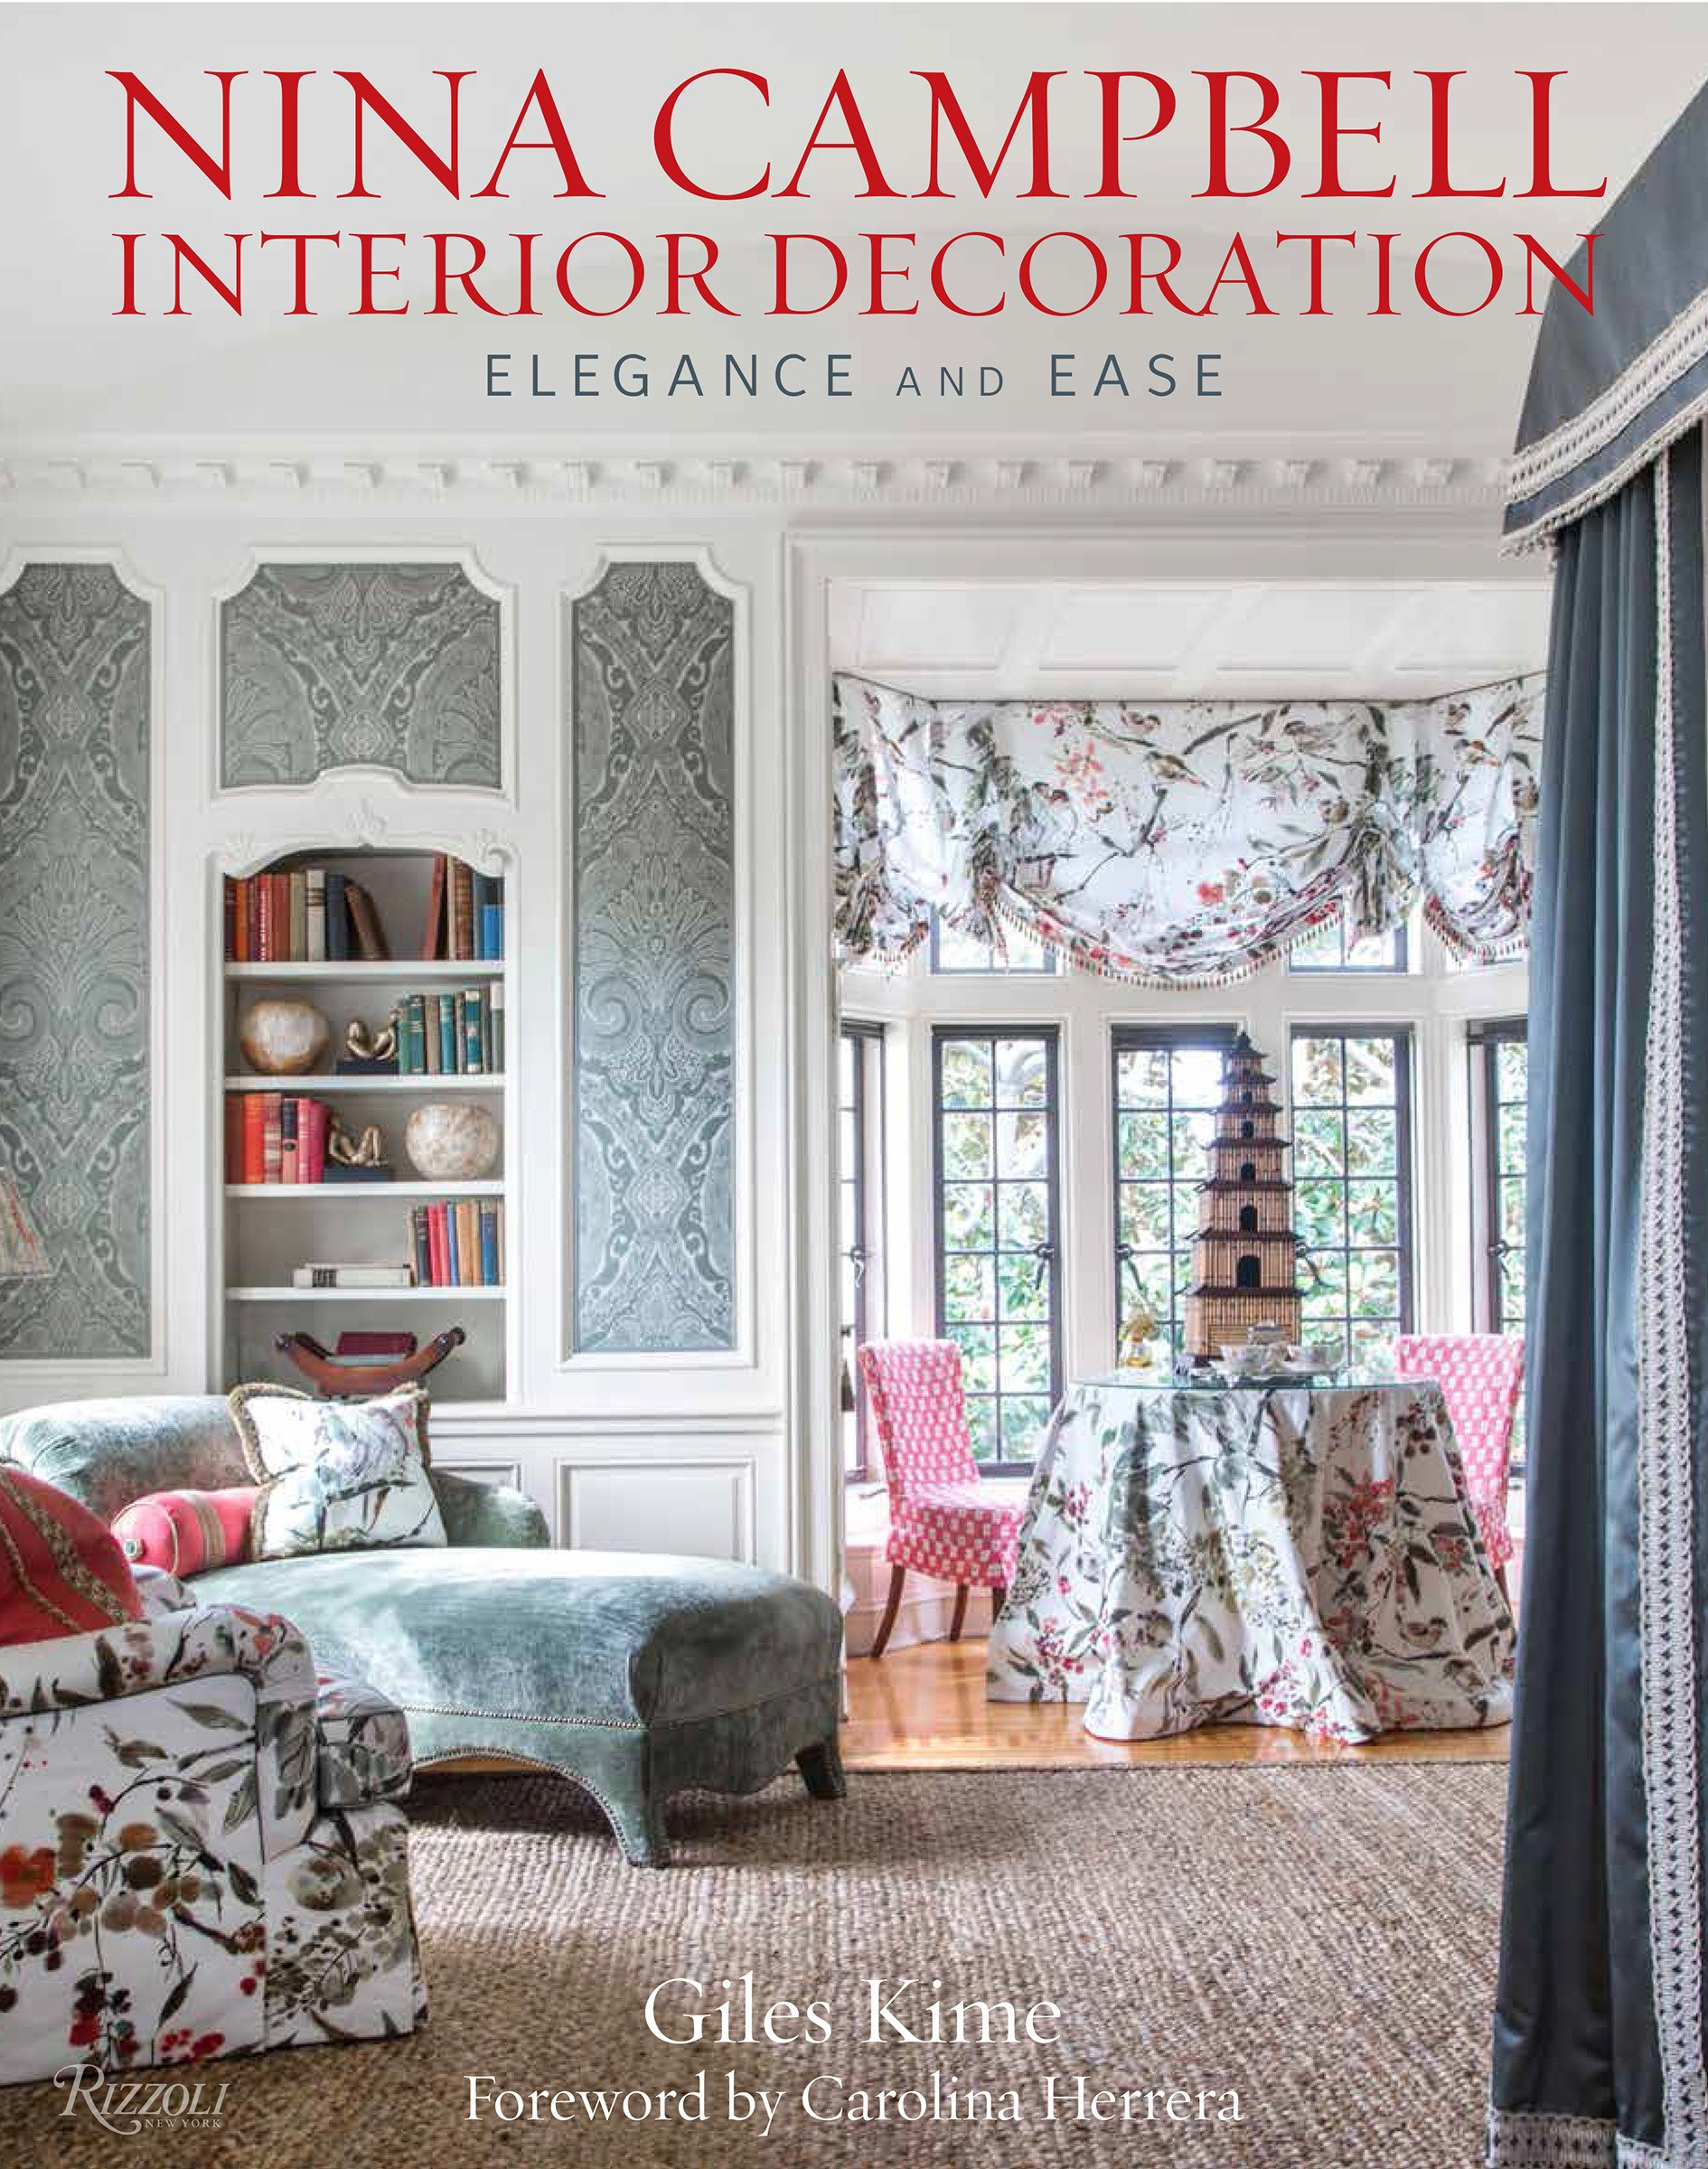 Nina campbell interior decoration elegance and ease hardcover september 11 2018